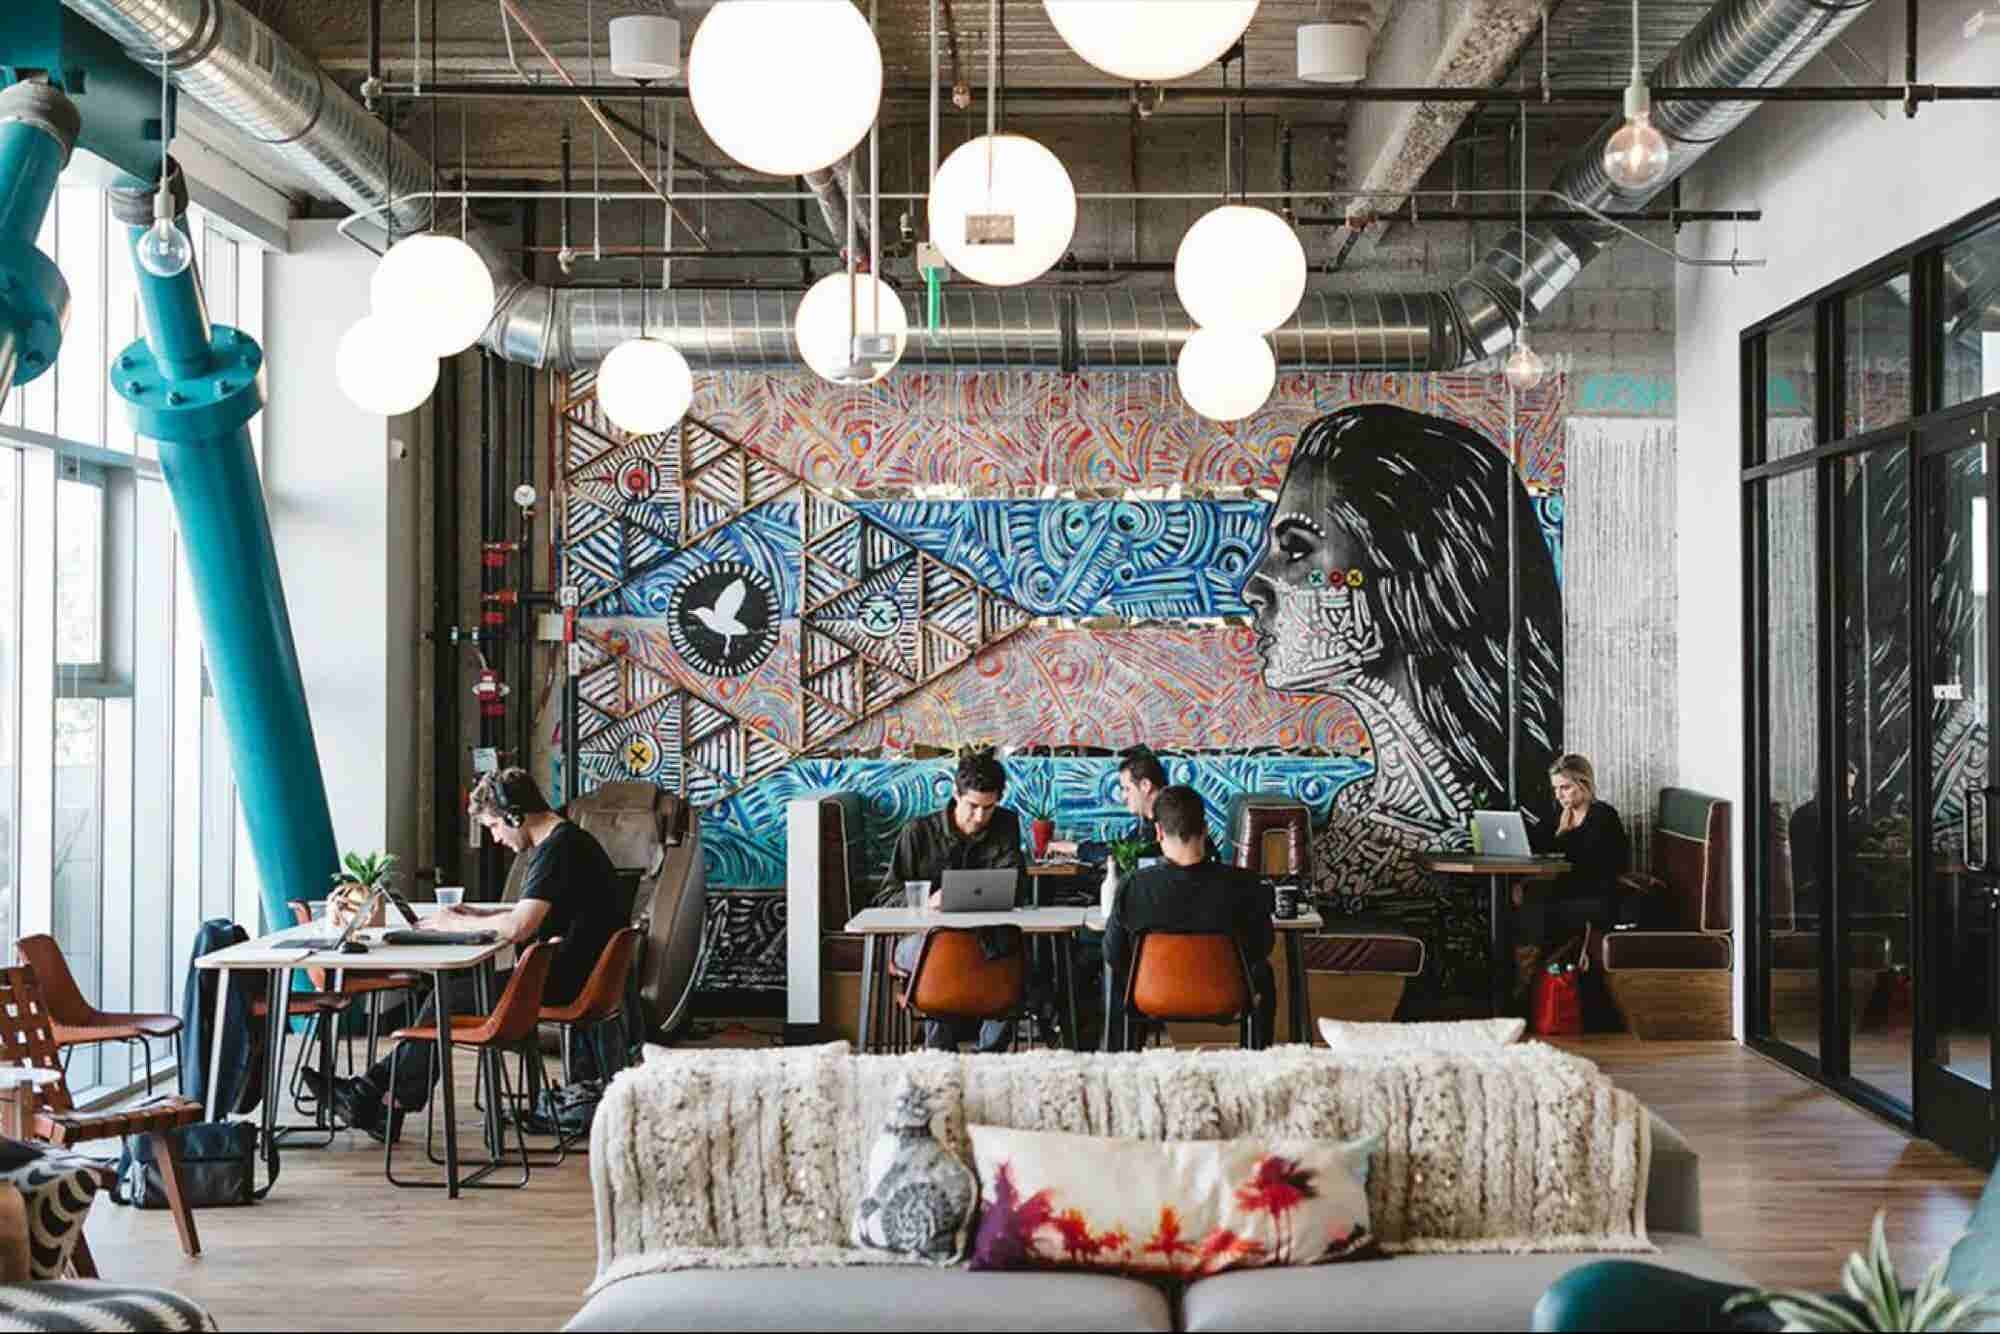 12 Crazy Things You Should Know About WeWork, the Coworking Company Valued at $20 Billion